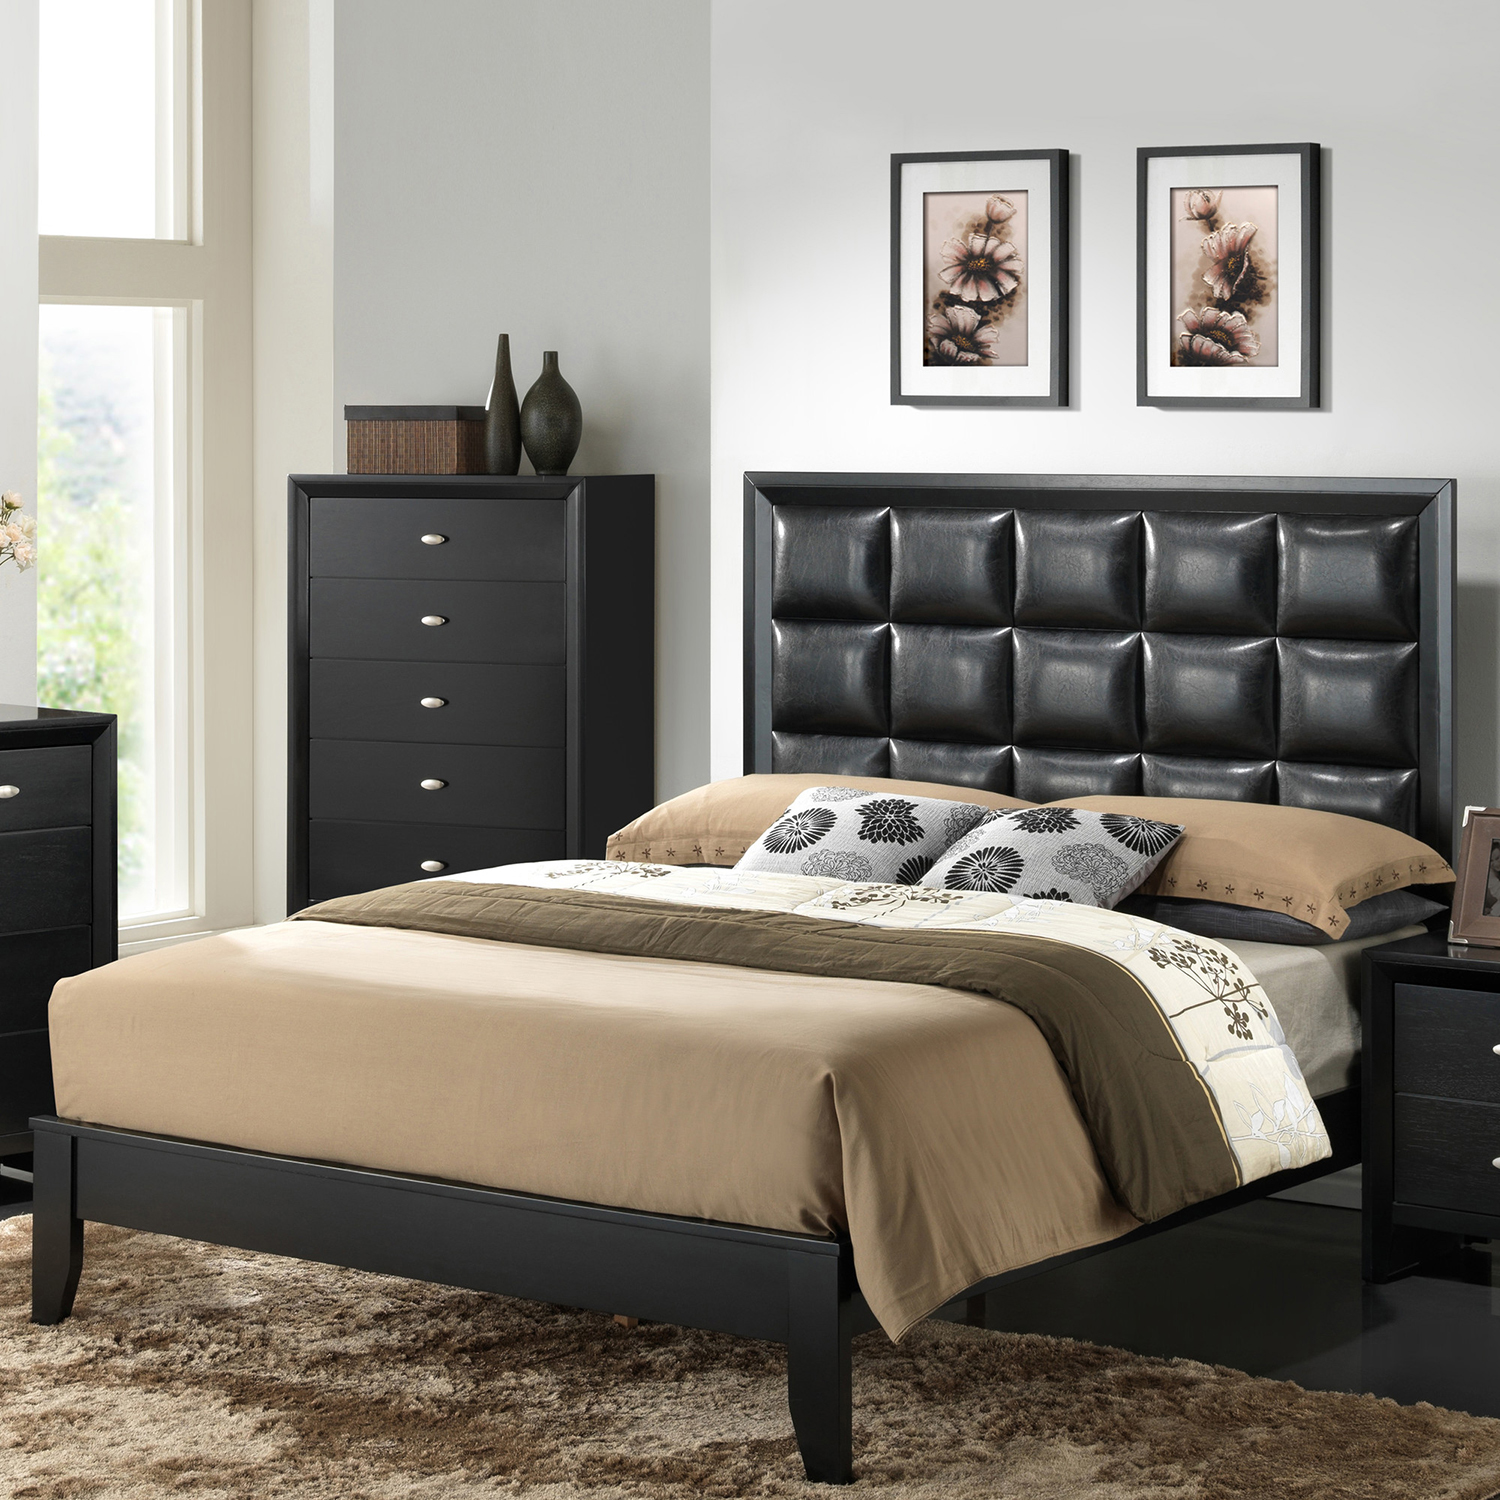 Carolina Bedroom Set in Black - GLO-CAROLINA-FD0035B-BL-M-SET